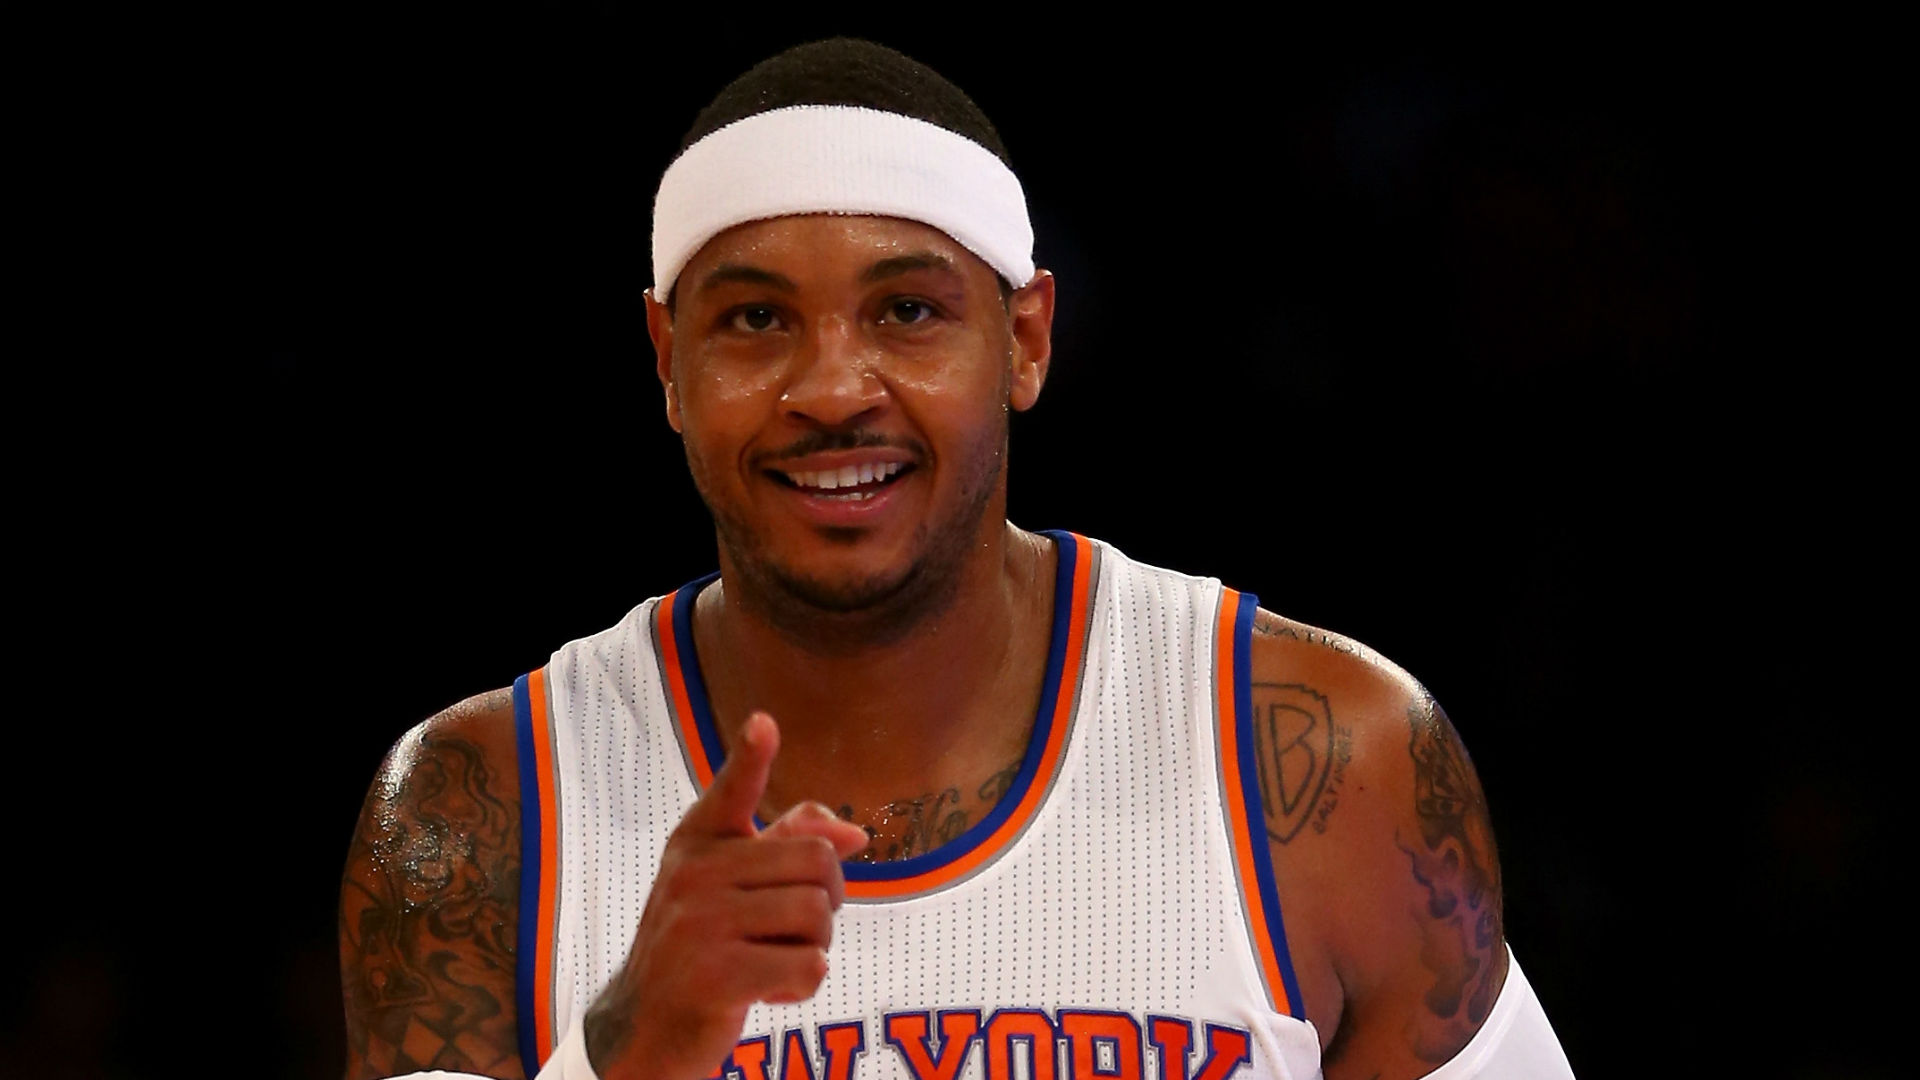 Carmelo Anthony Wallpapers High Resolution and Quality ...